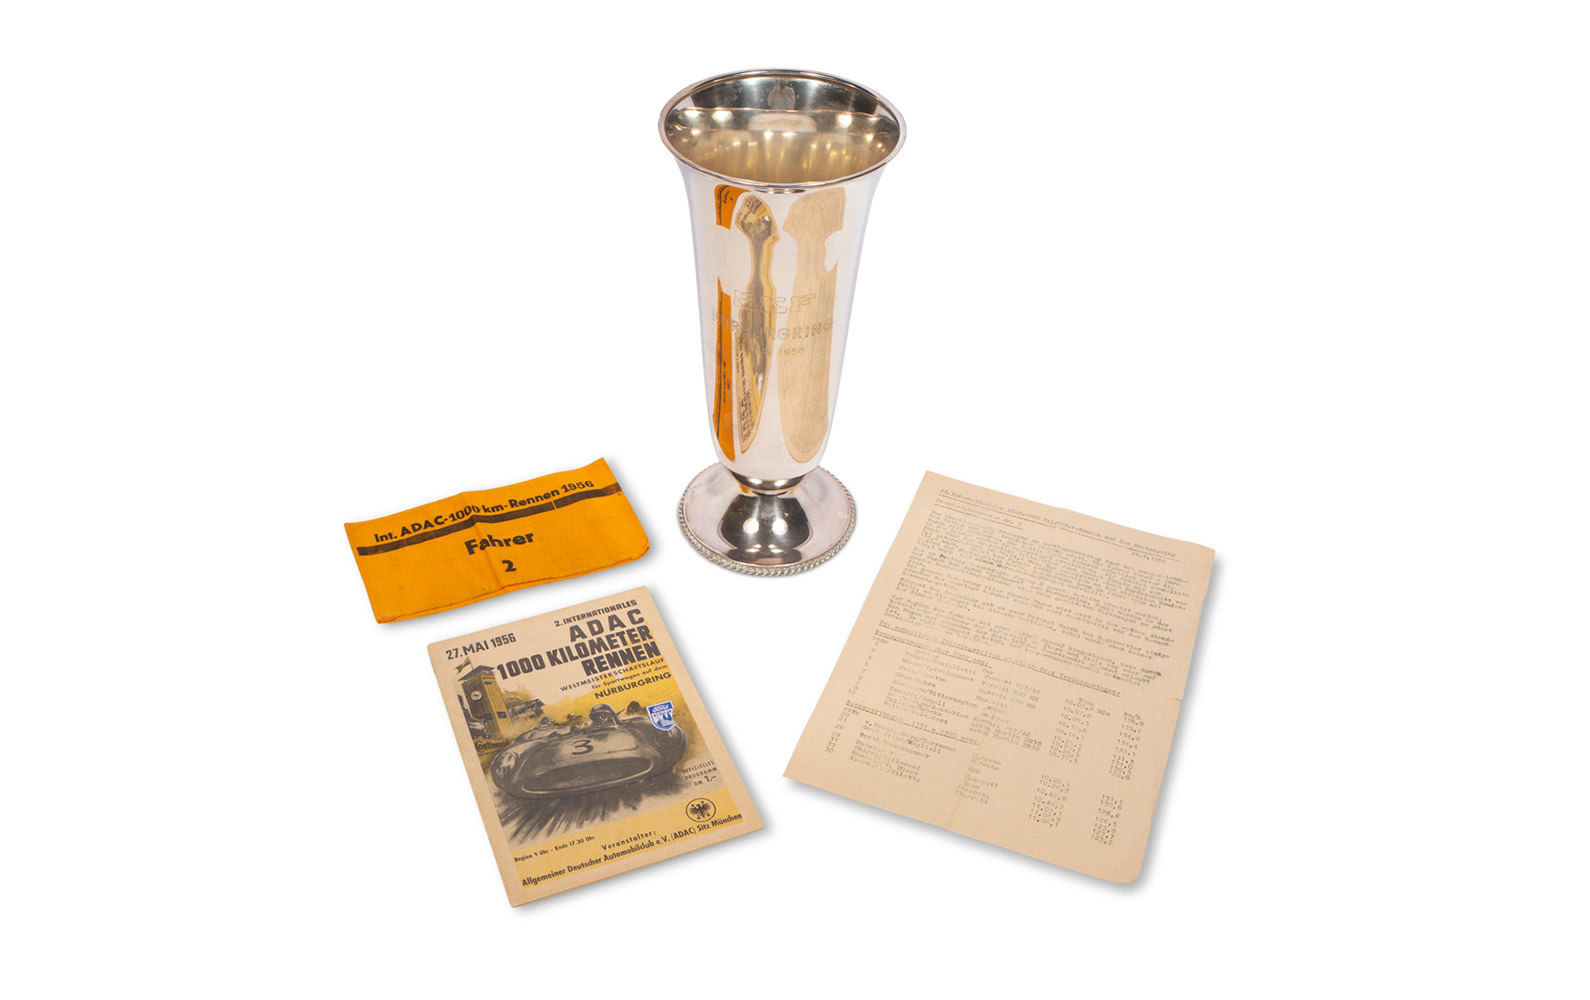 1956 ADAC 1000 Km Nürburgring Trophy, Official Race Program, Driver Armband, and Press Sheet